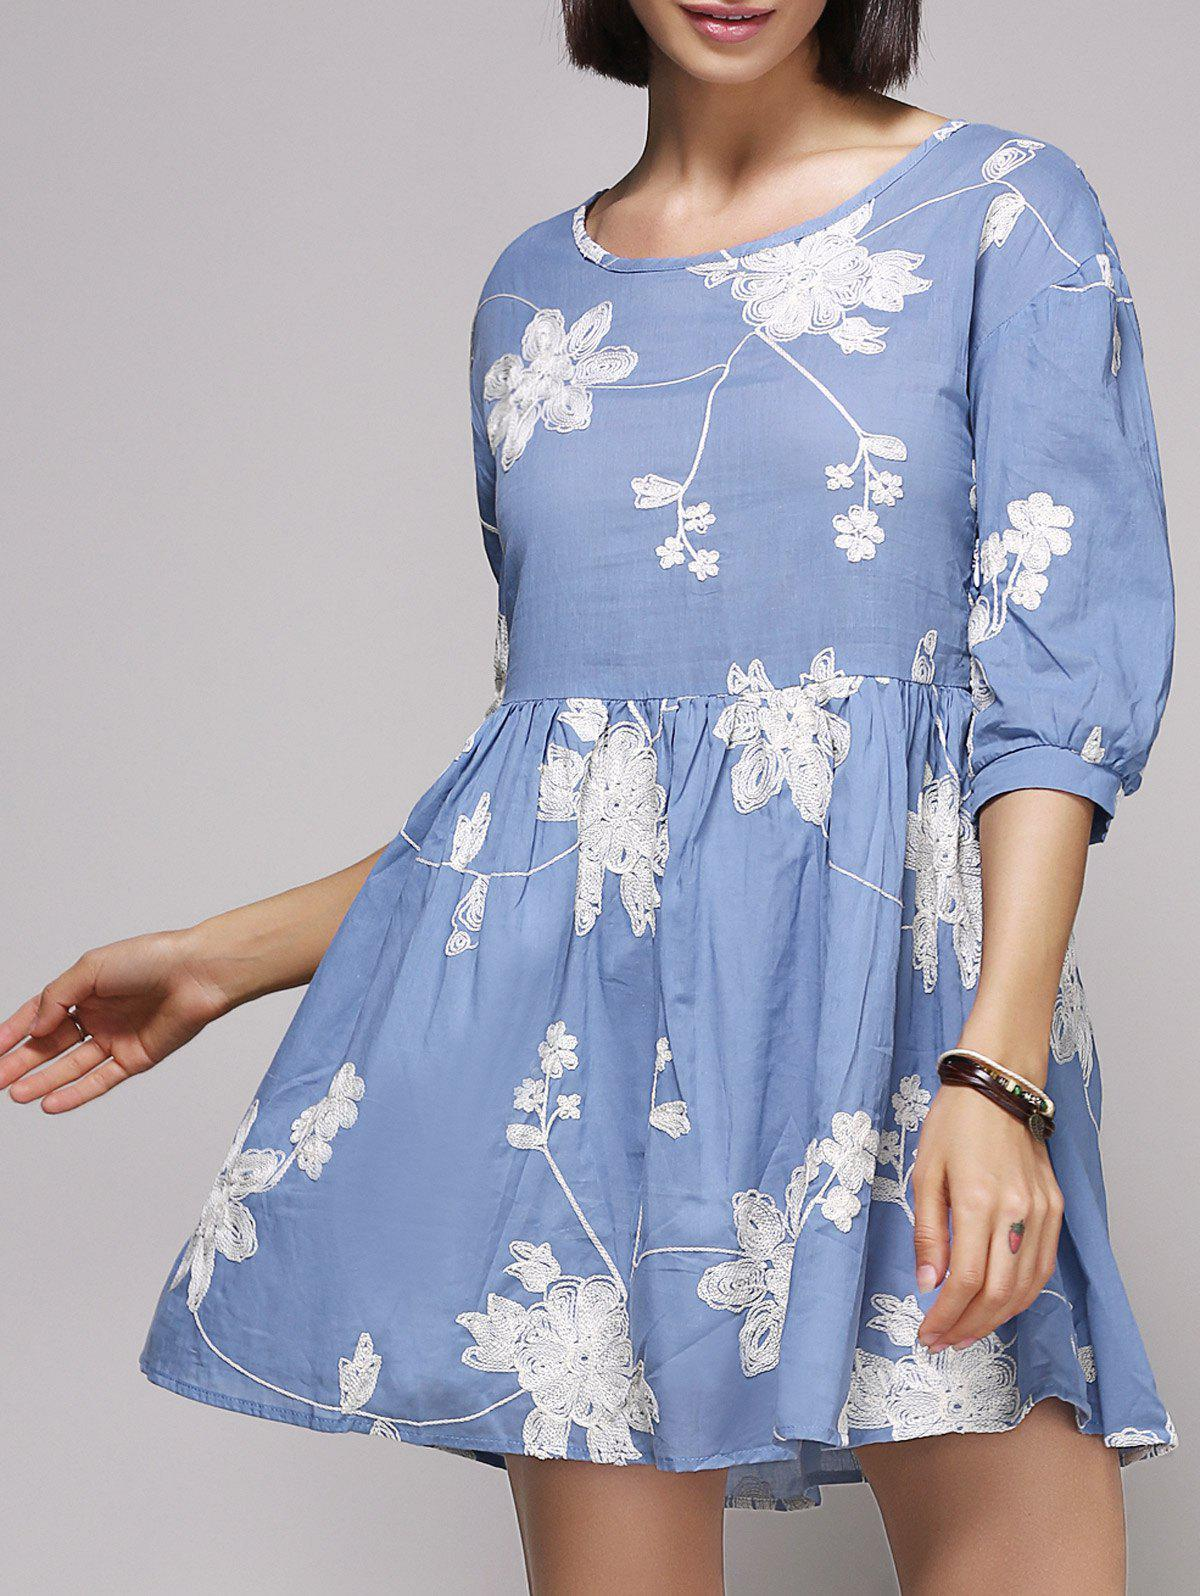 Stylish Women's 3/4 Sleeve Scoop Neck Embroidered Floral Dress